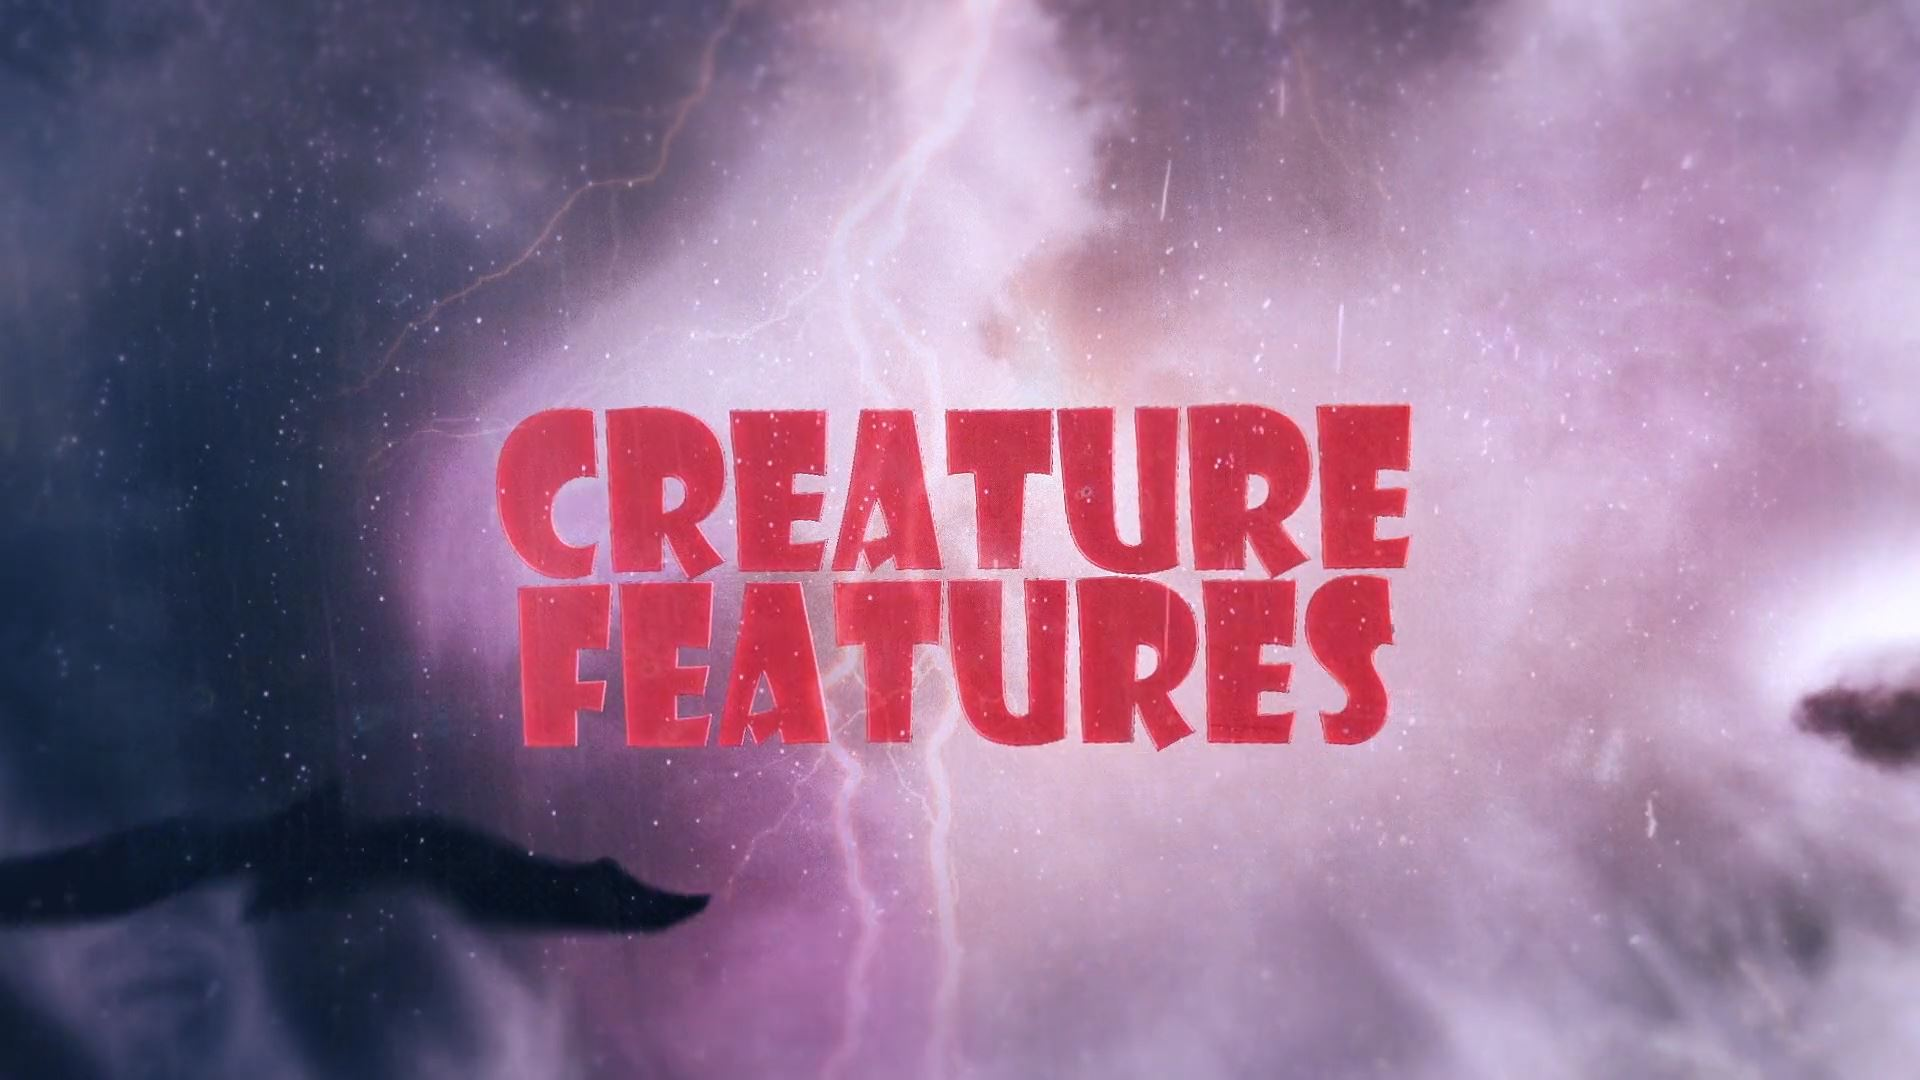 Logo of Creature Features